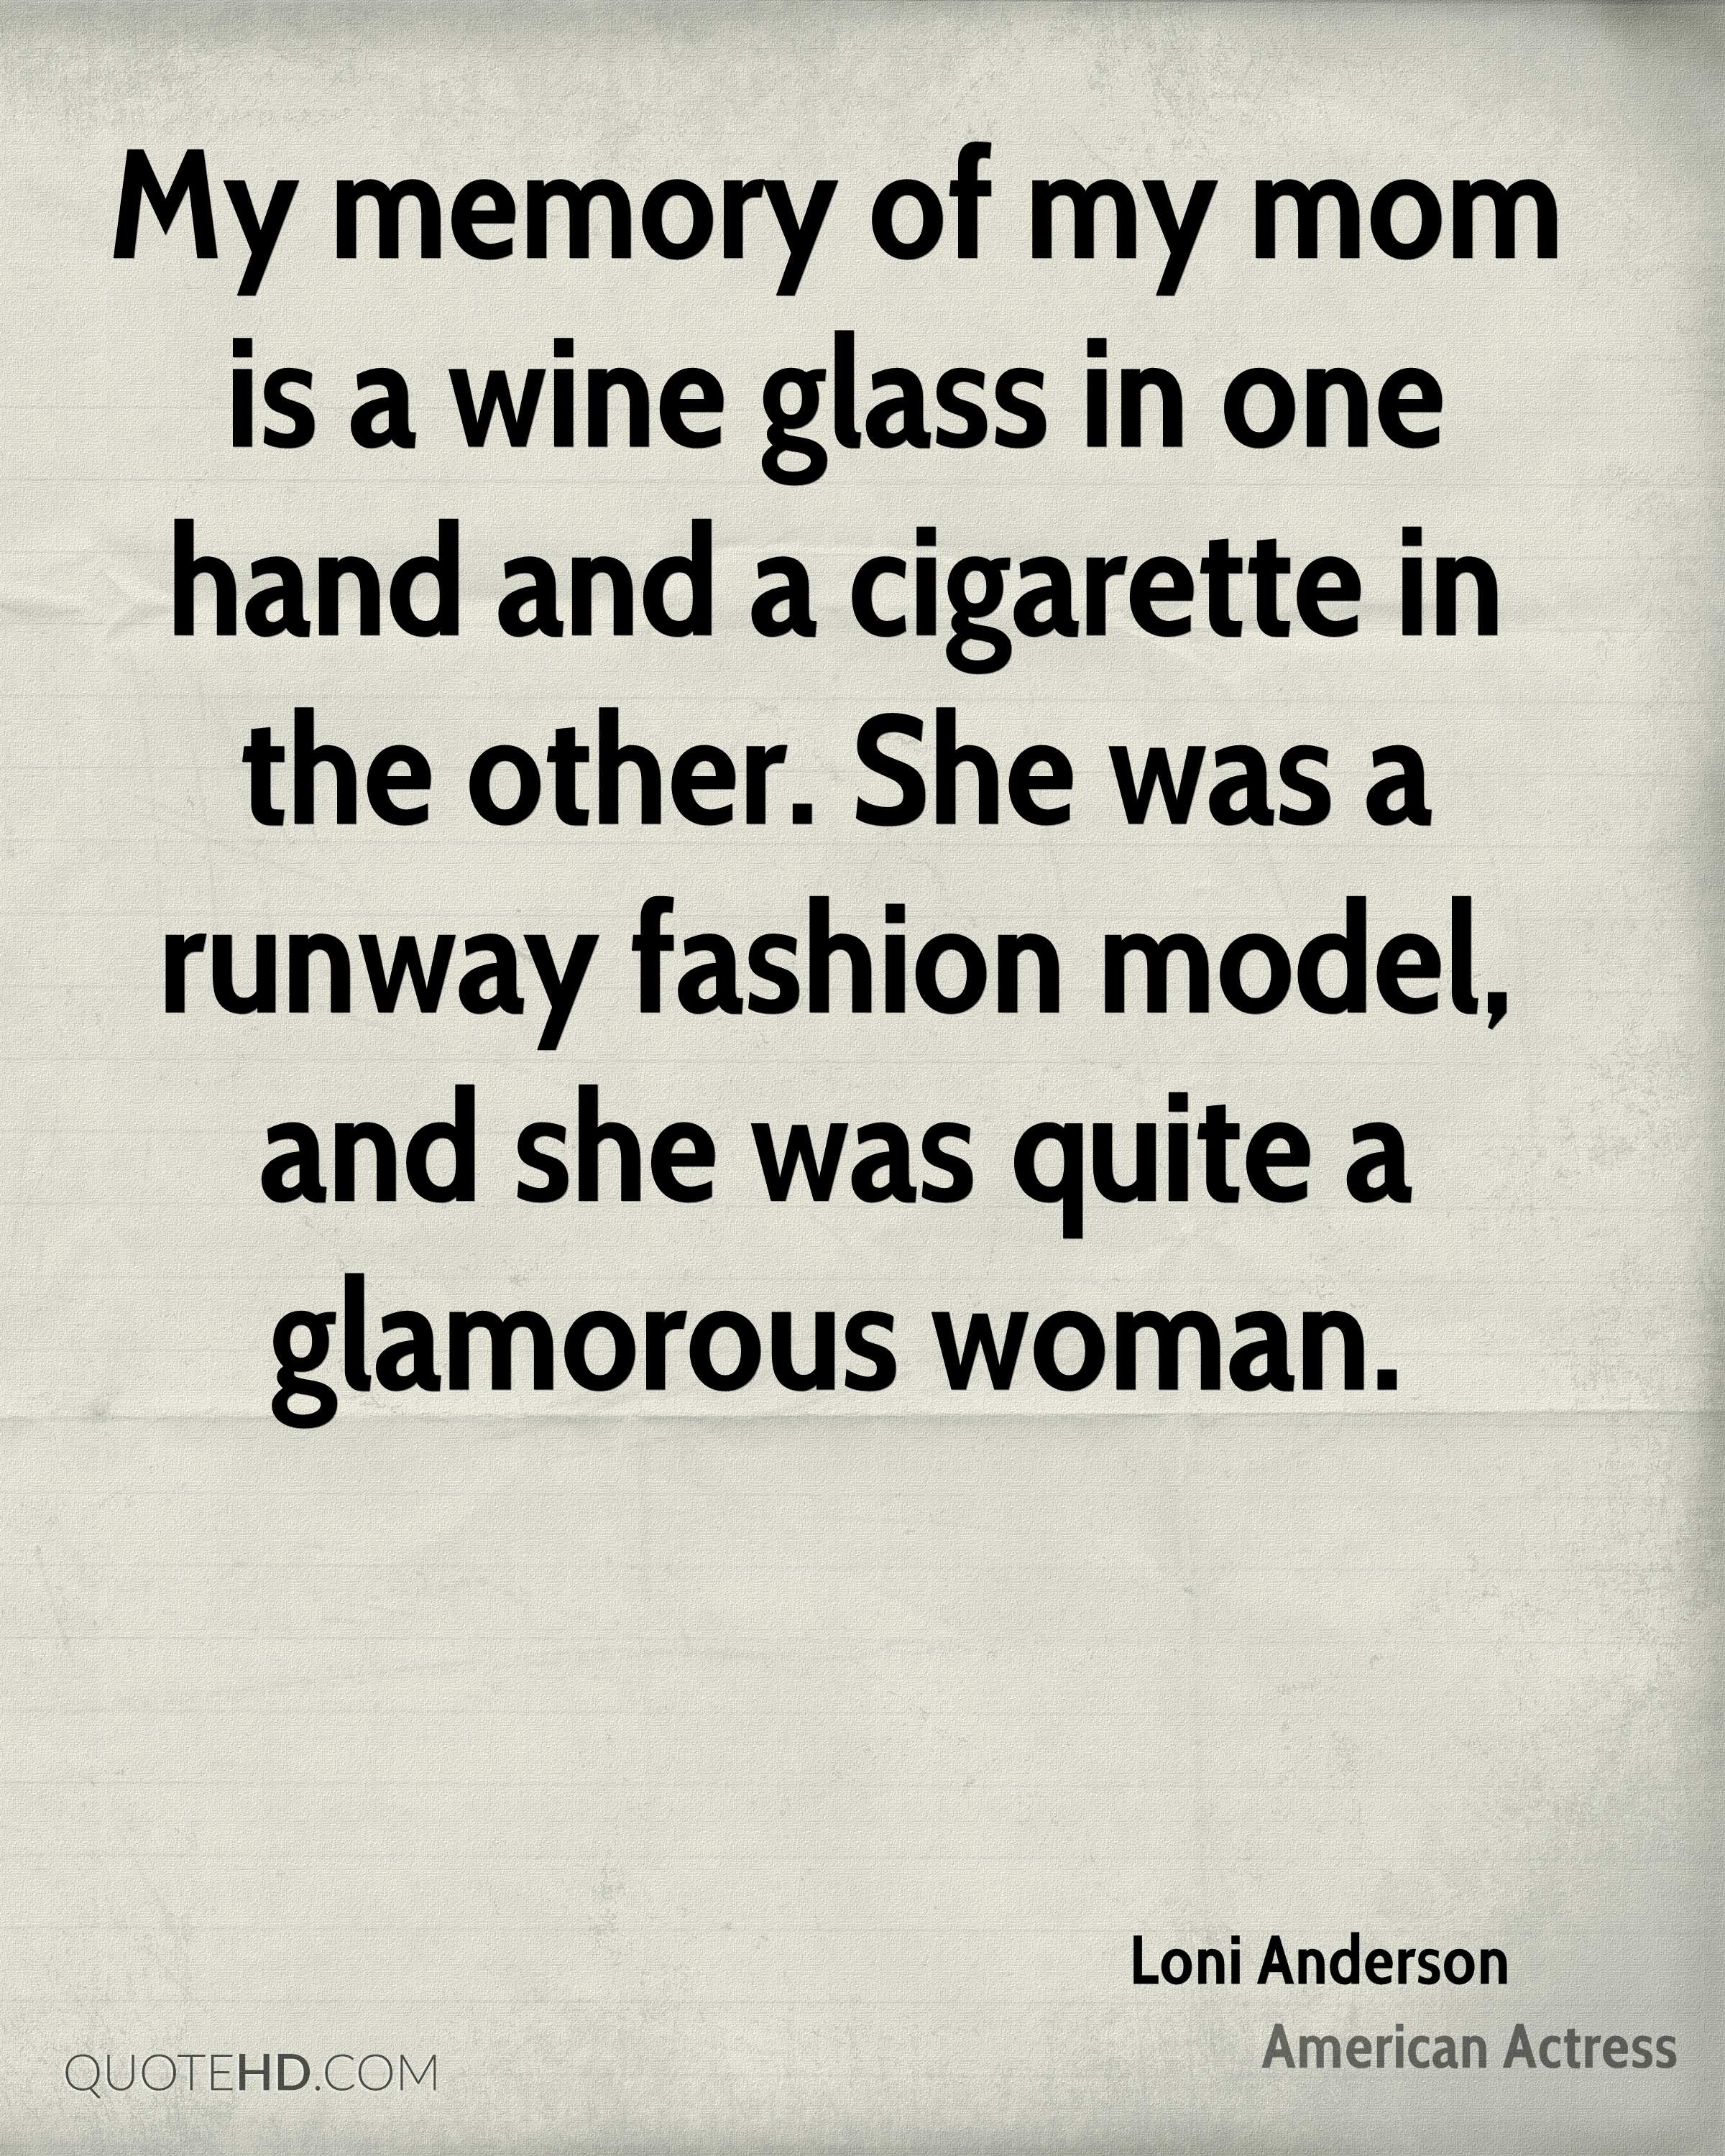 My memory of my mom is a wine glass in one hand and a cigarette in the other. She was a runway fashion model, and she was quite a glamorous woman.